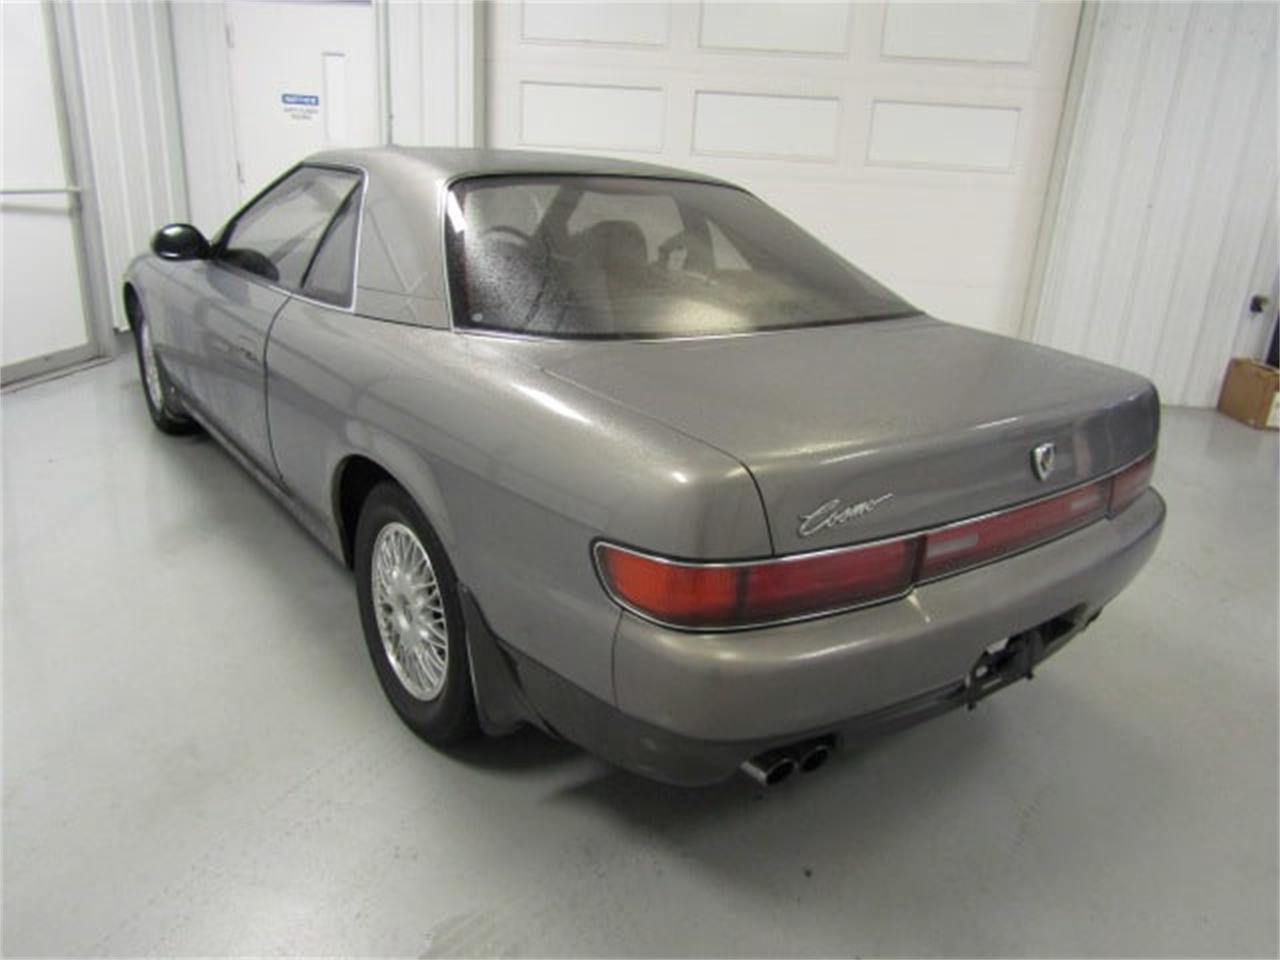 Large Picture of '92 Cosmo - $16,900.00 Offered by Duncan Imports & Classic Cars - LVD1